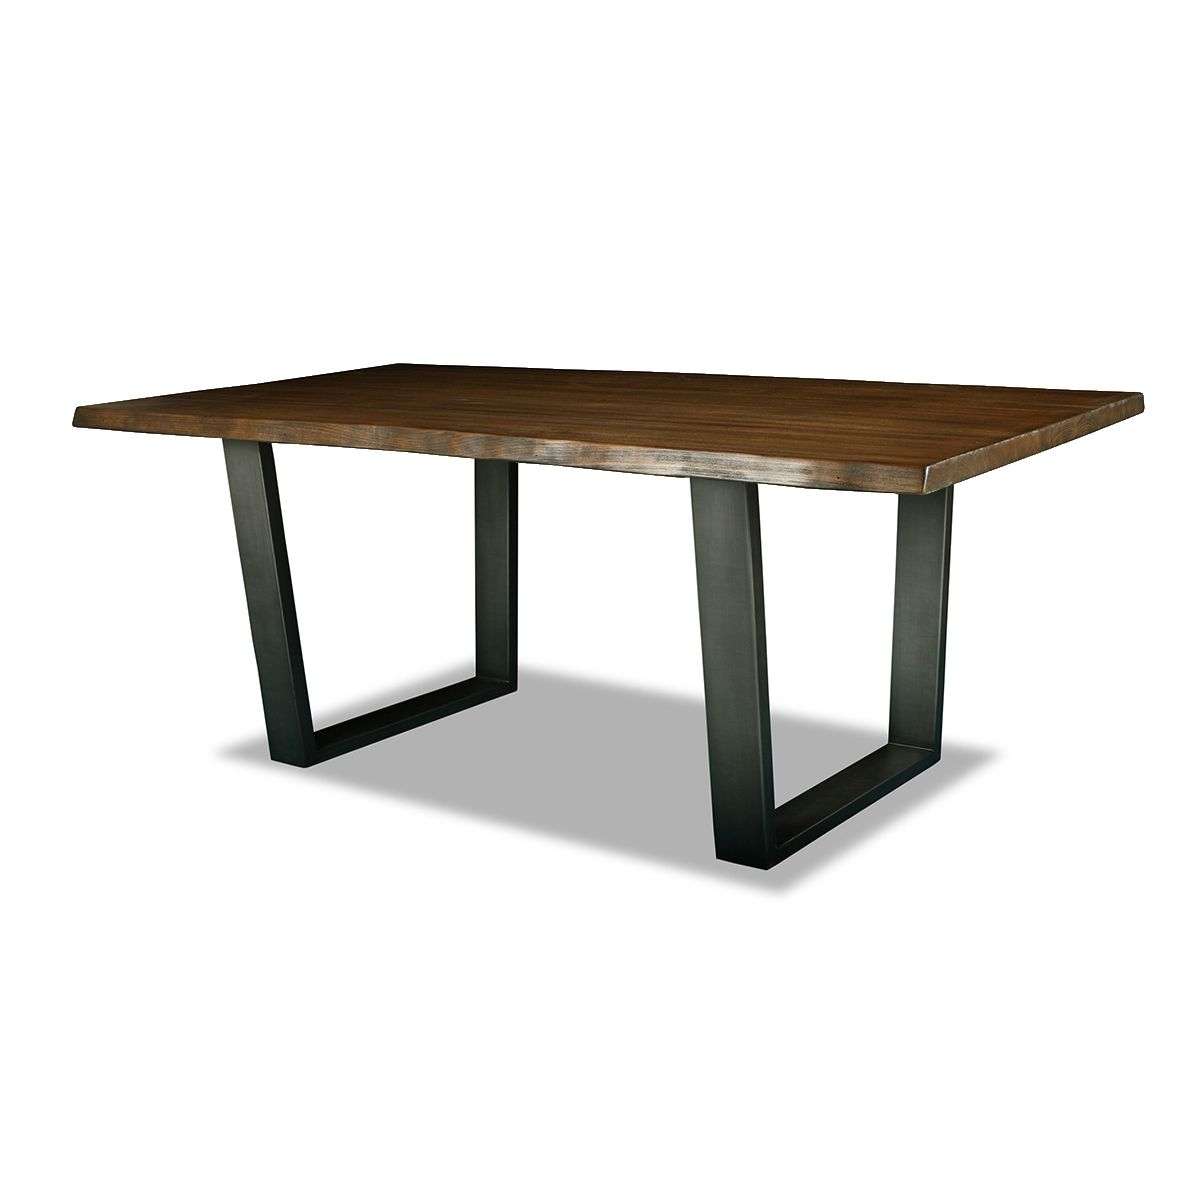 Newest Parsons Grey Solid Surface Top & Stainless Steel Base 48x16 Console Tables With Regard To Parsons Travertine Top/ Dark Steel Base Dining Tables (View 14 of 20)